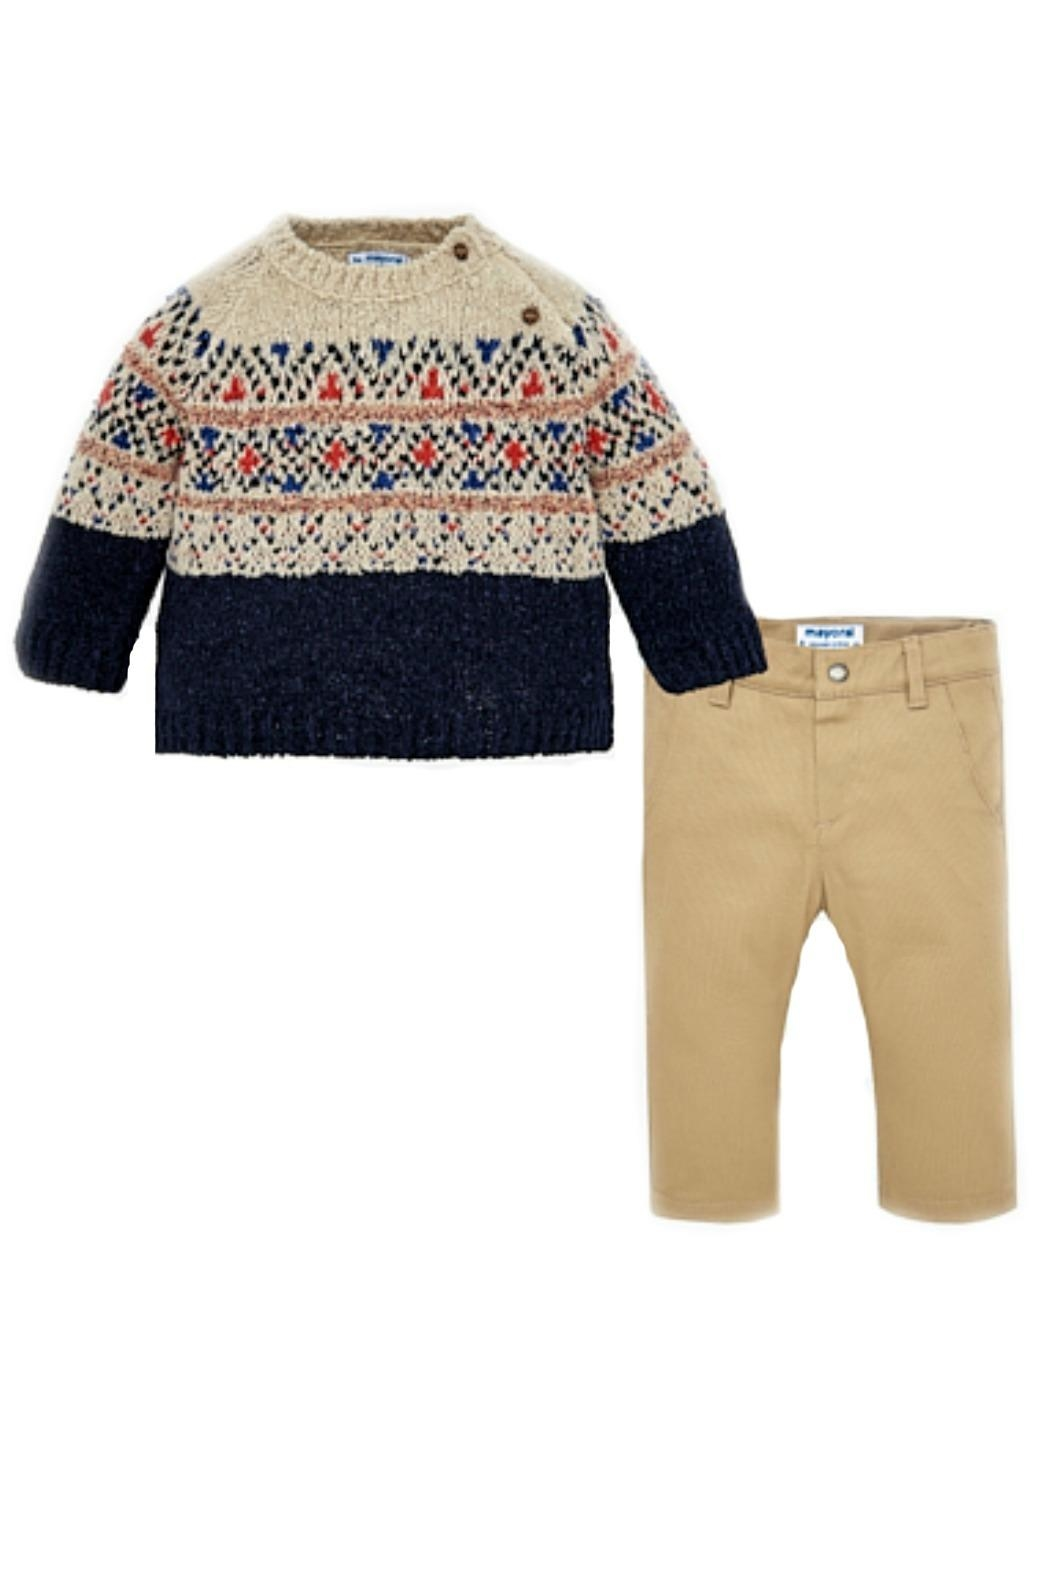 bdb7f391f6f9 Mayoral Baby-Boy Sweater Set from South Carolina by The Children s ...